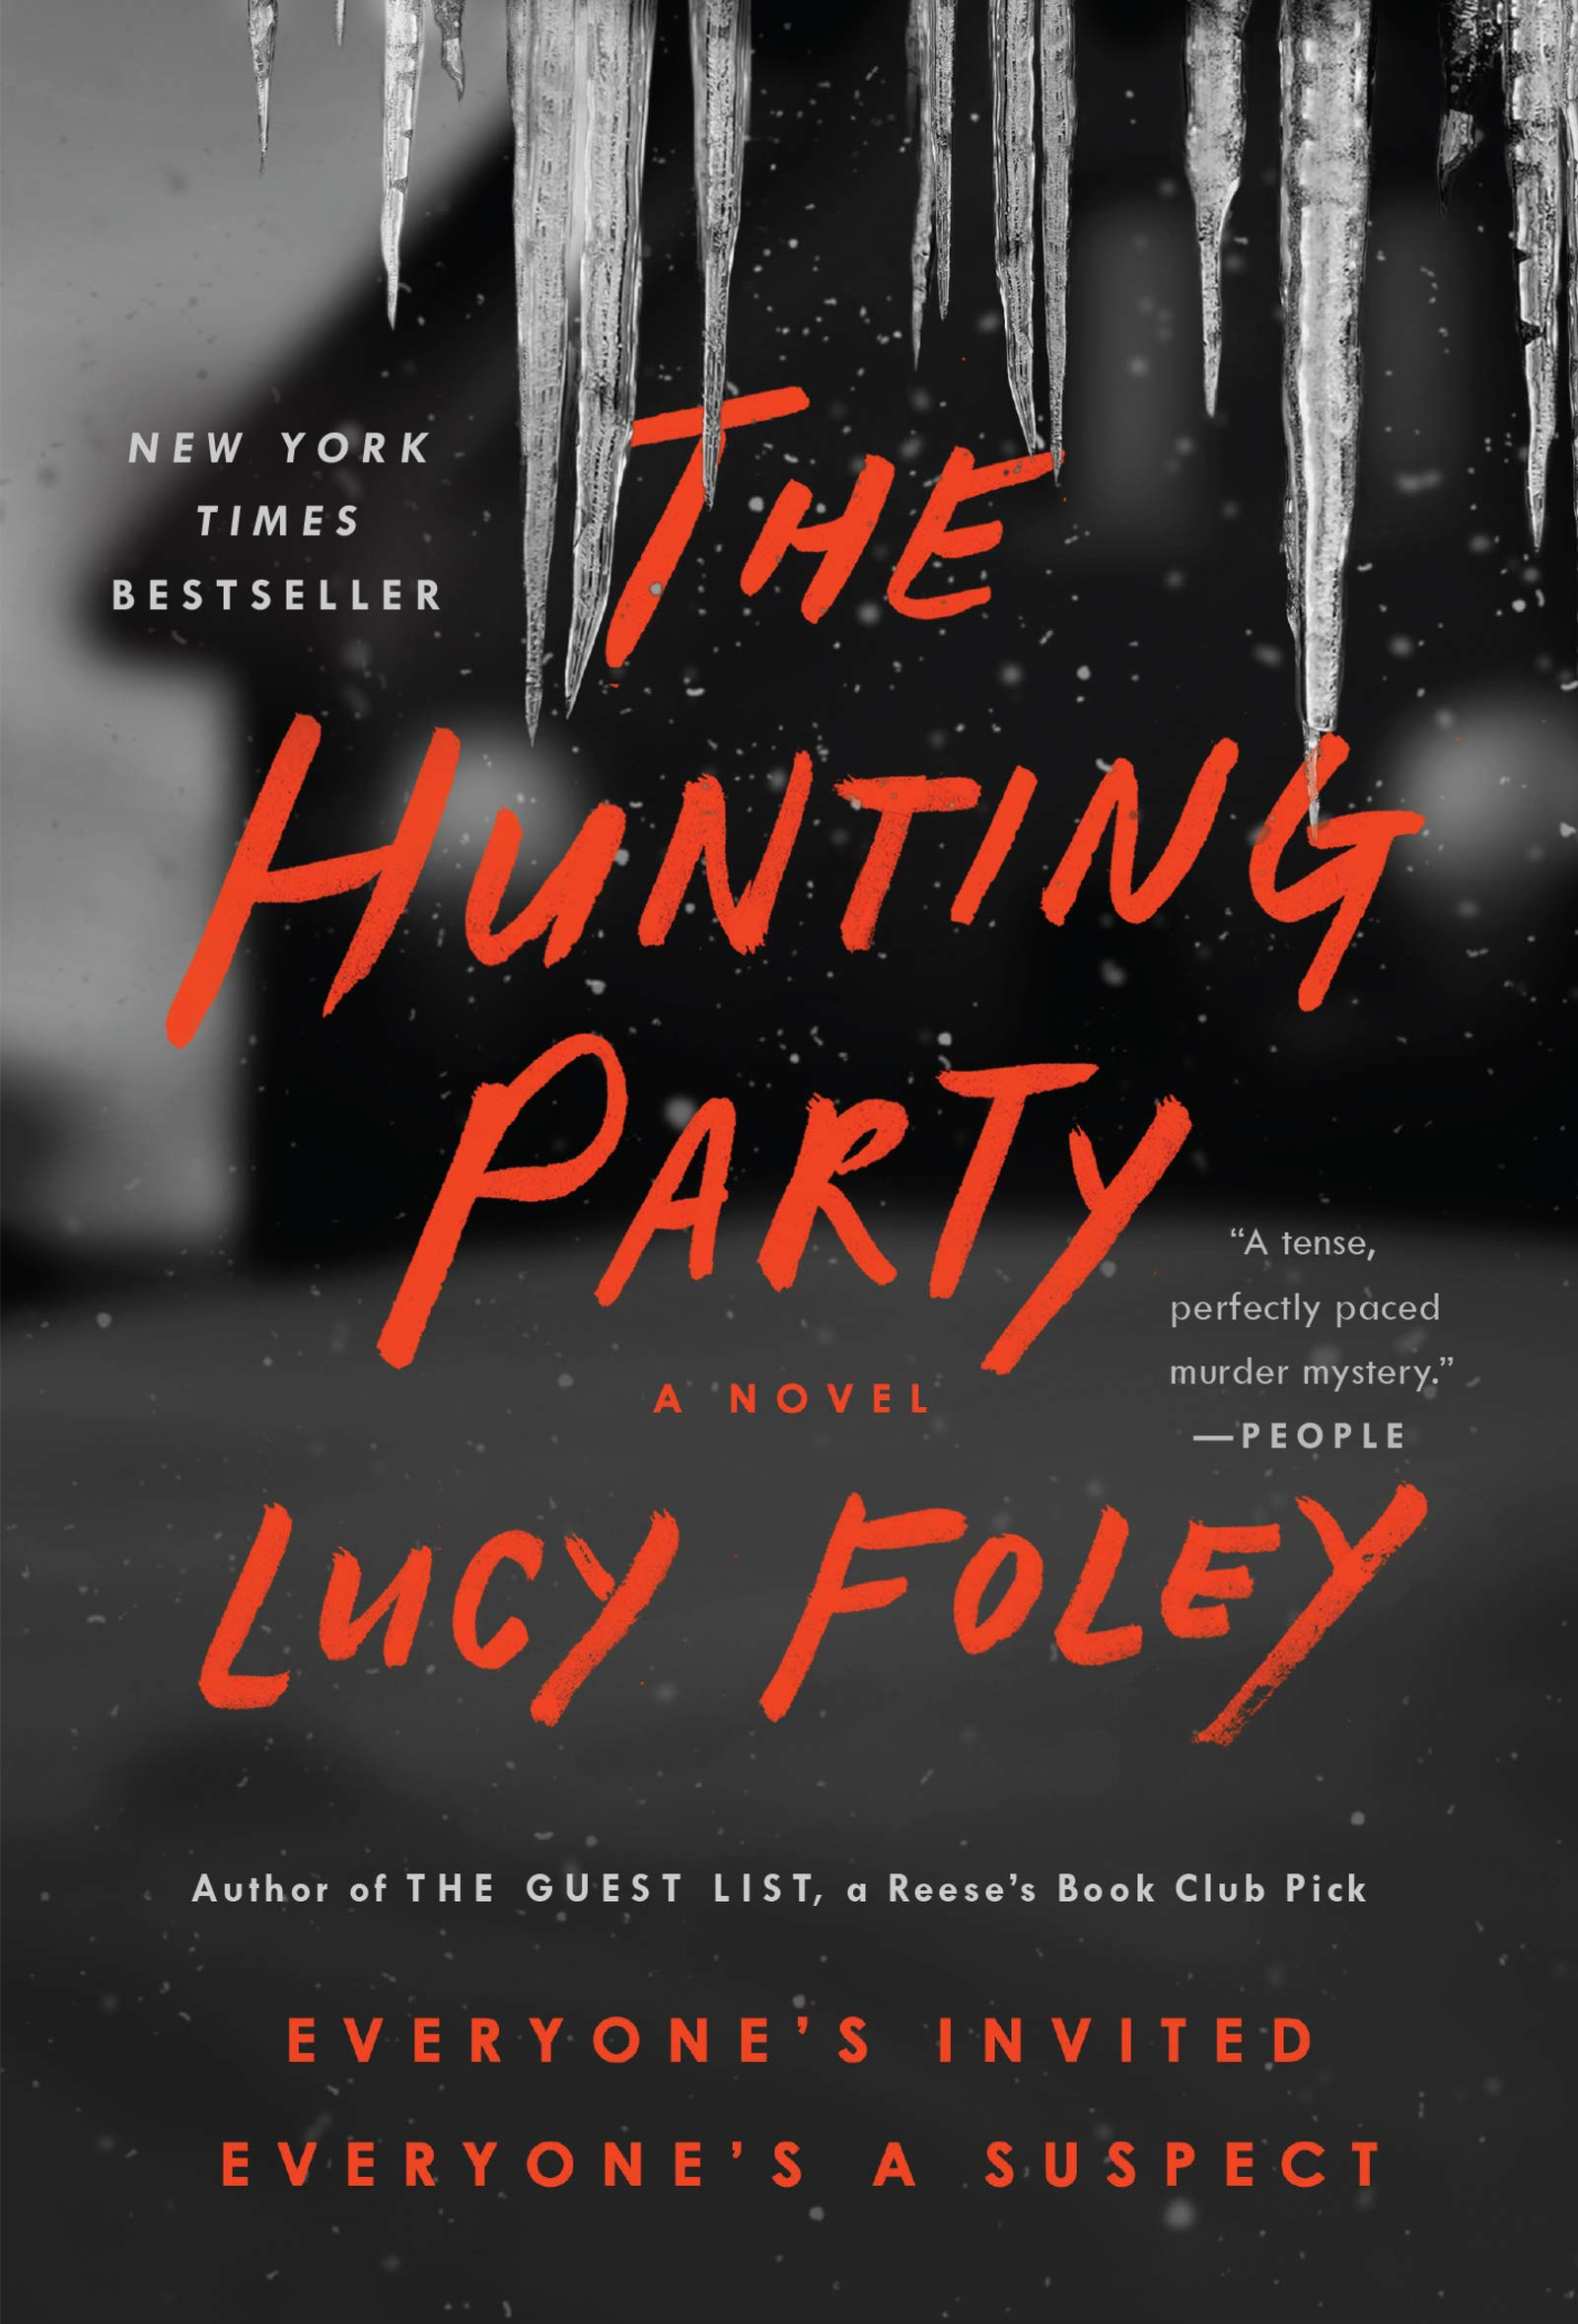 Amazon.com: The Hunting Party: A Novel (9780063063587): Foley, Lucy: Books